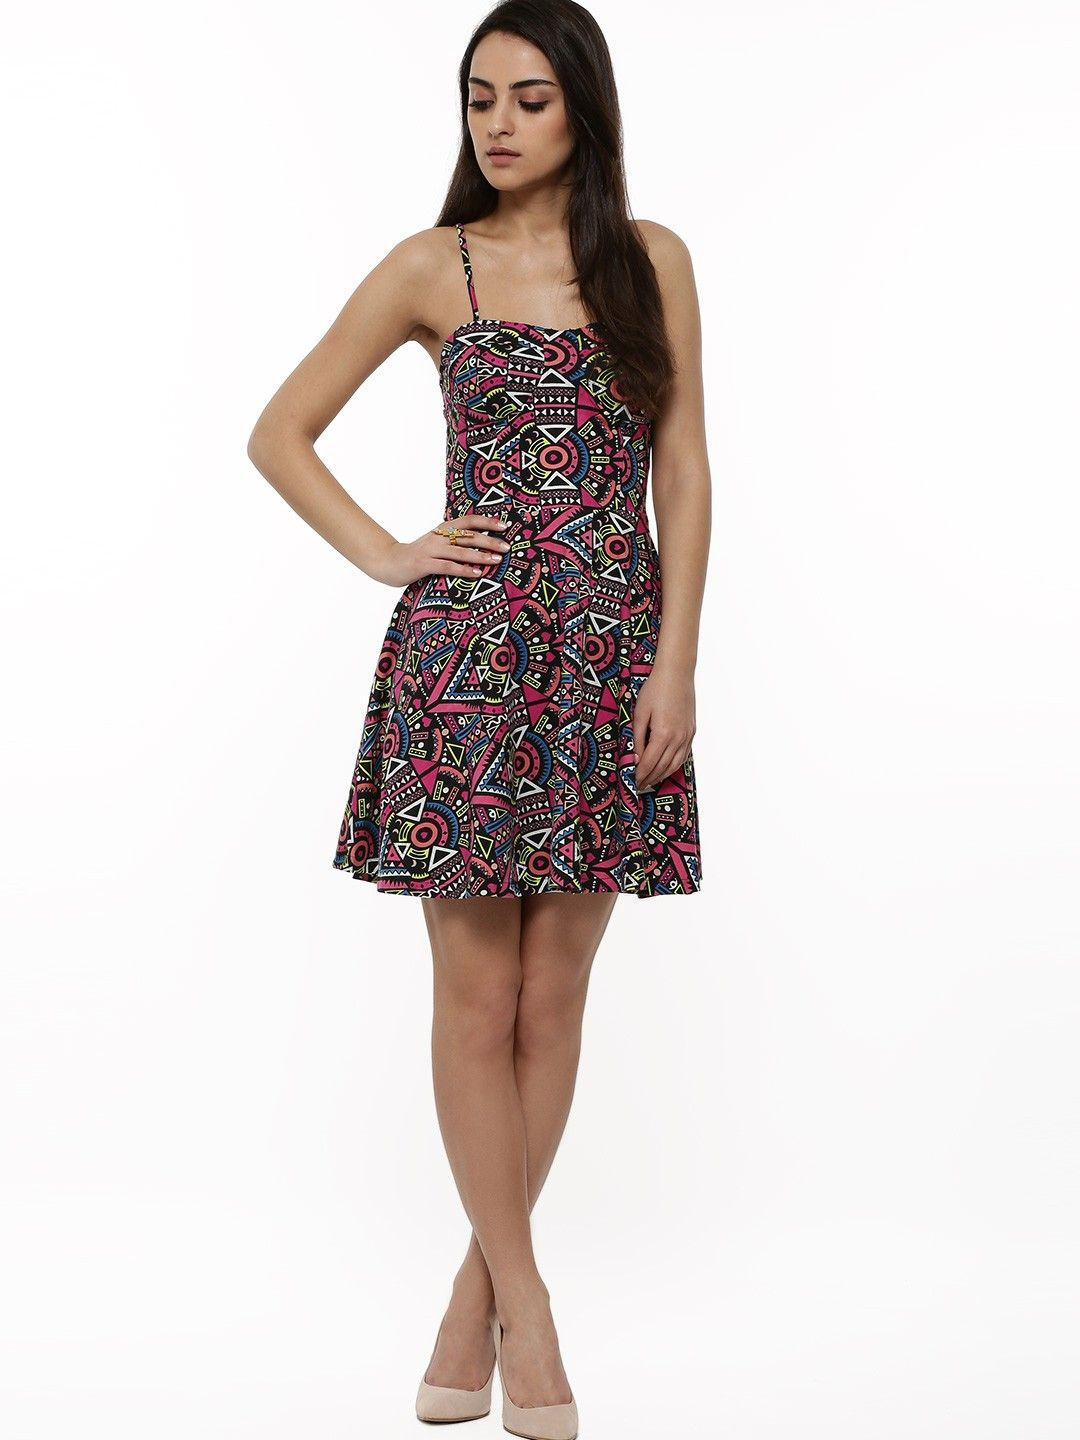 FABALLEY Aztec Print Strappy Dress - Buy Women s Skater Dresses online in  India  01120390a